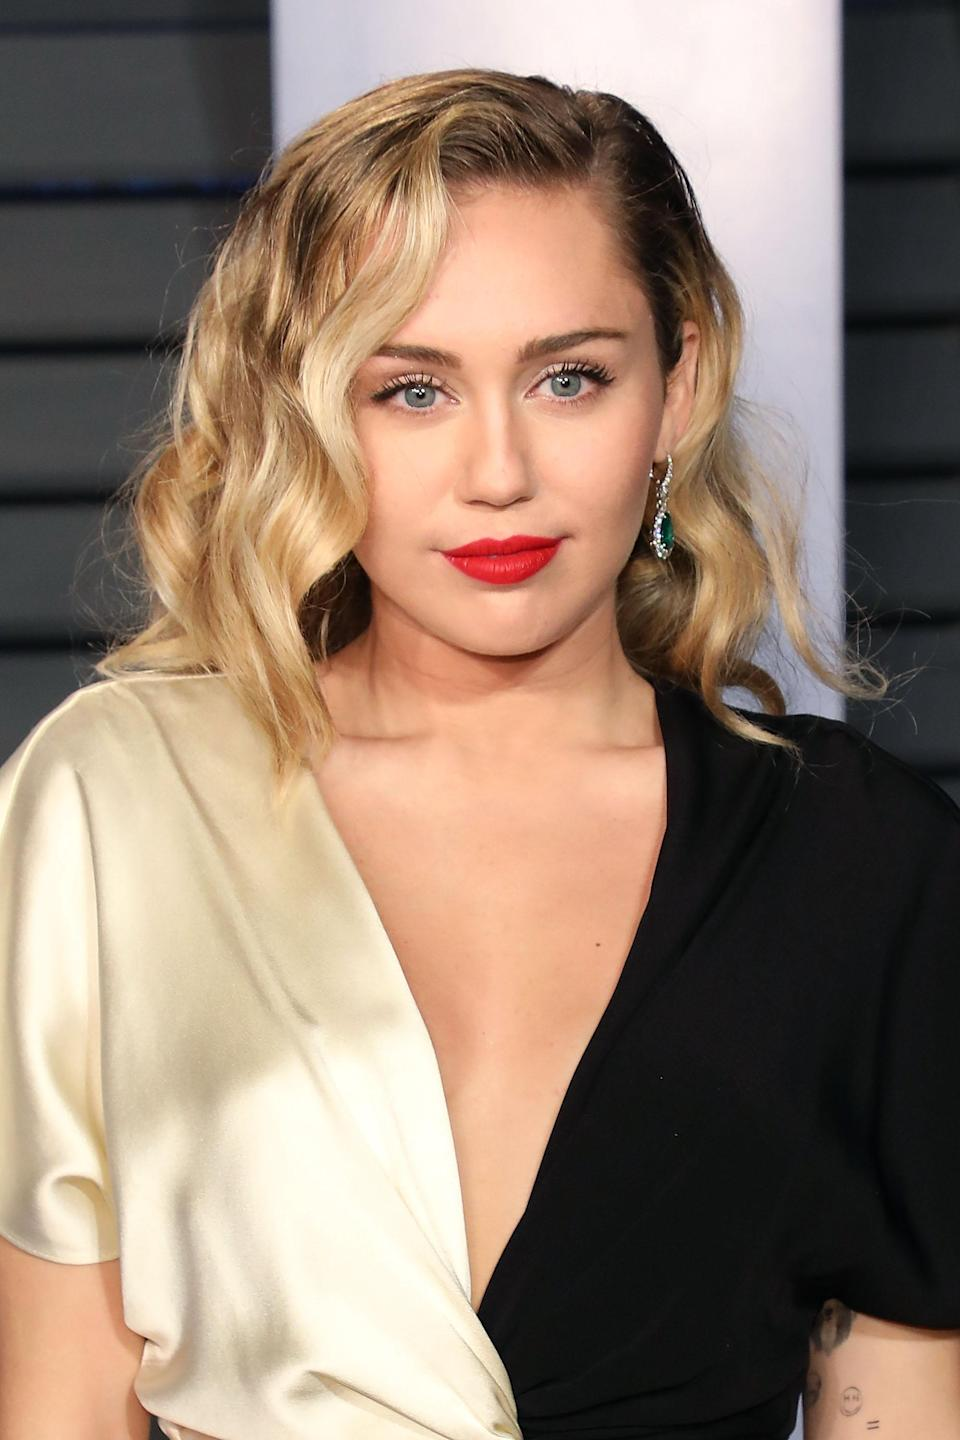 Singer Miley Cyrus has also identified as pansexual [Photo: Getty]